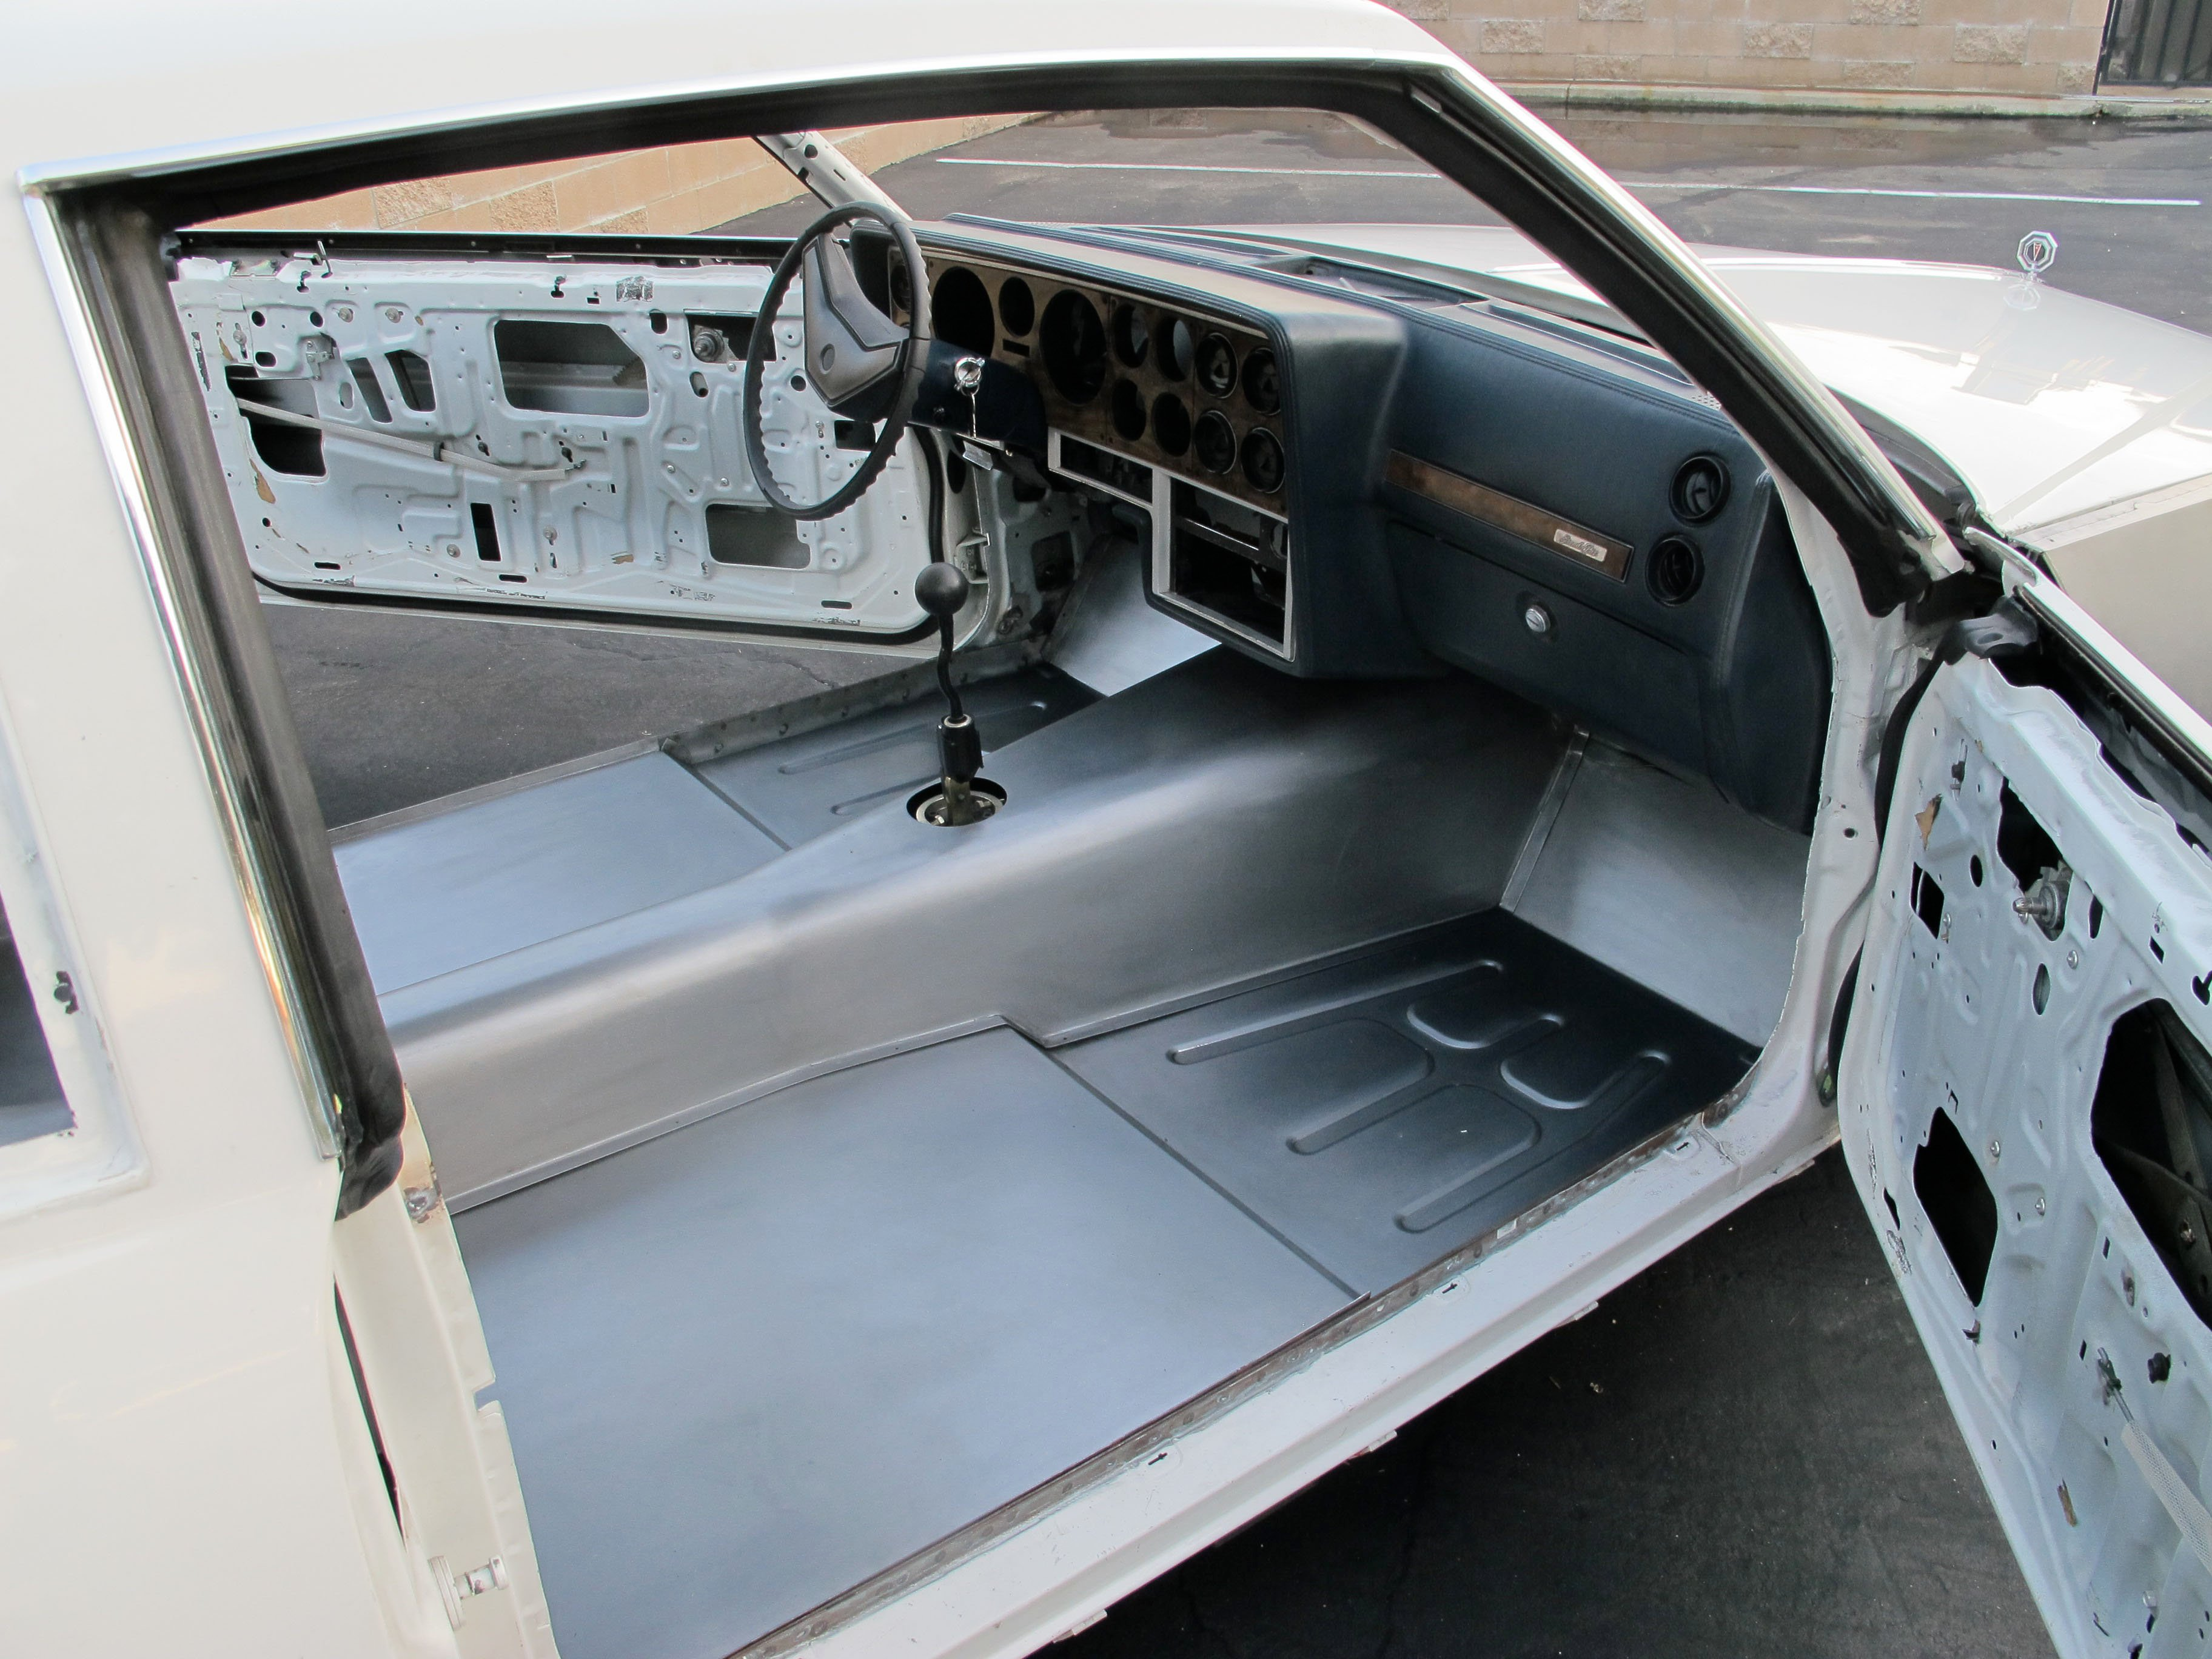 1987 Pontiac Grand Prix - Project: G-Force One: BODY AND